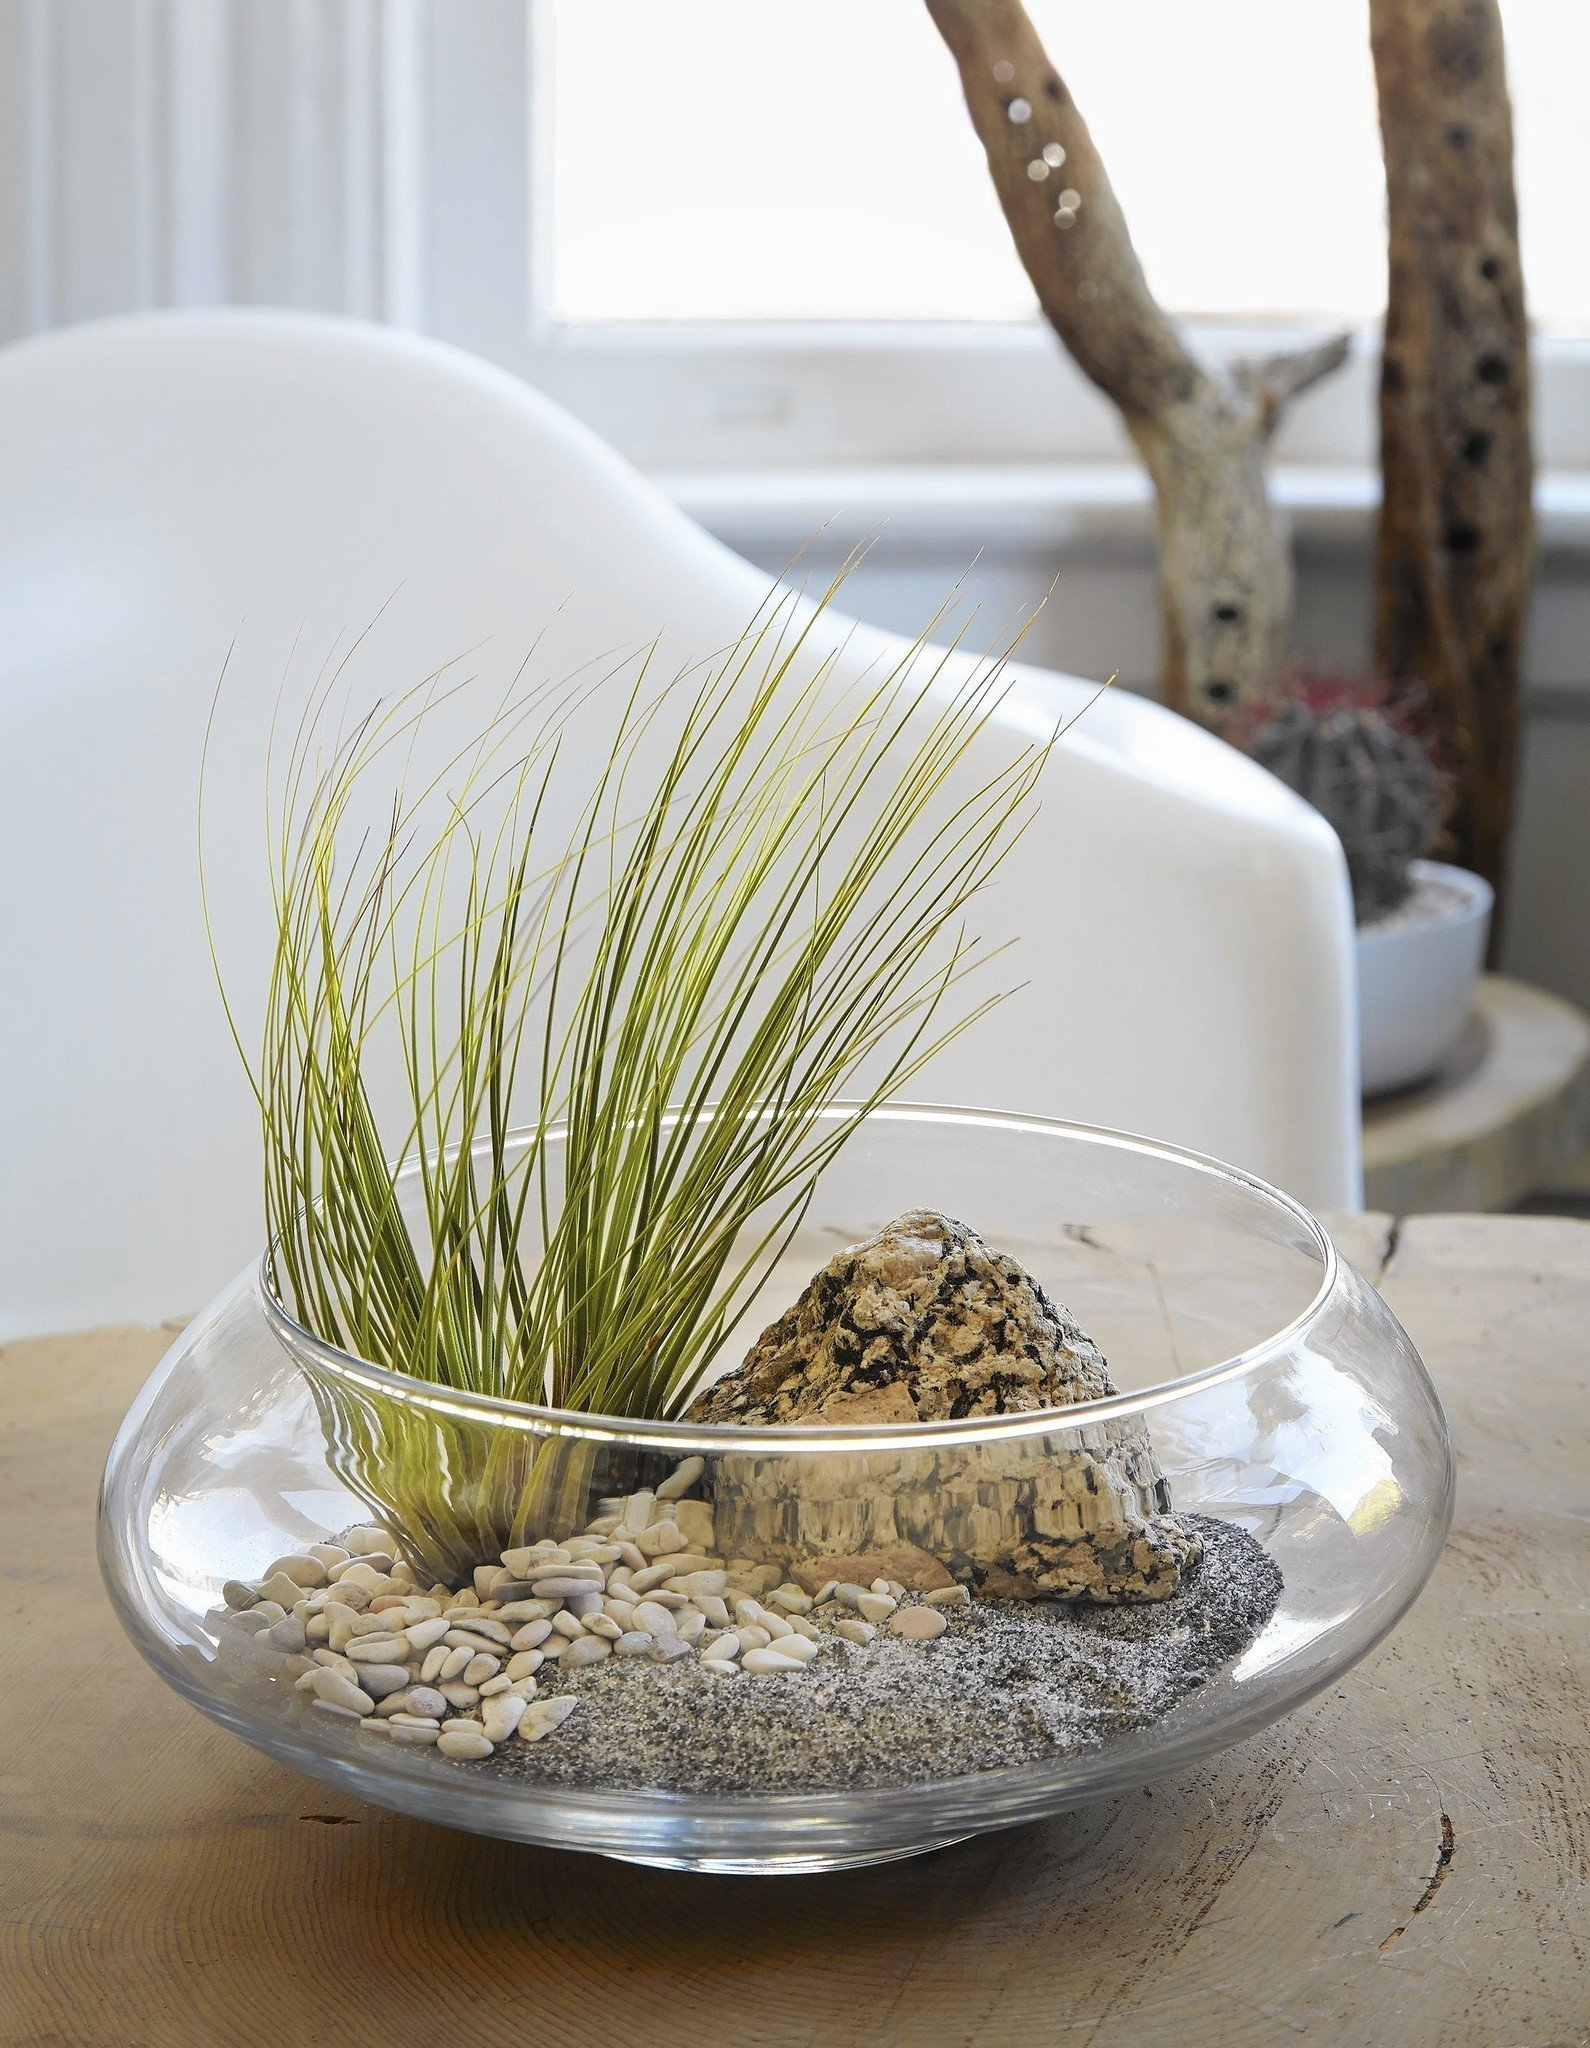 Best 30 Air Plants in West Chicago, IL with Reviews - YP.com